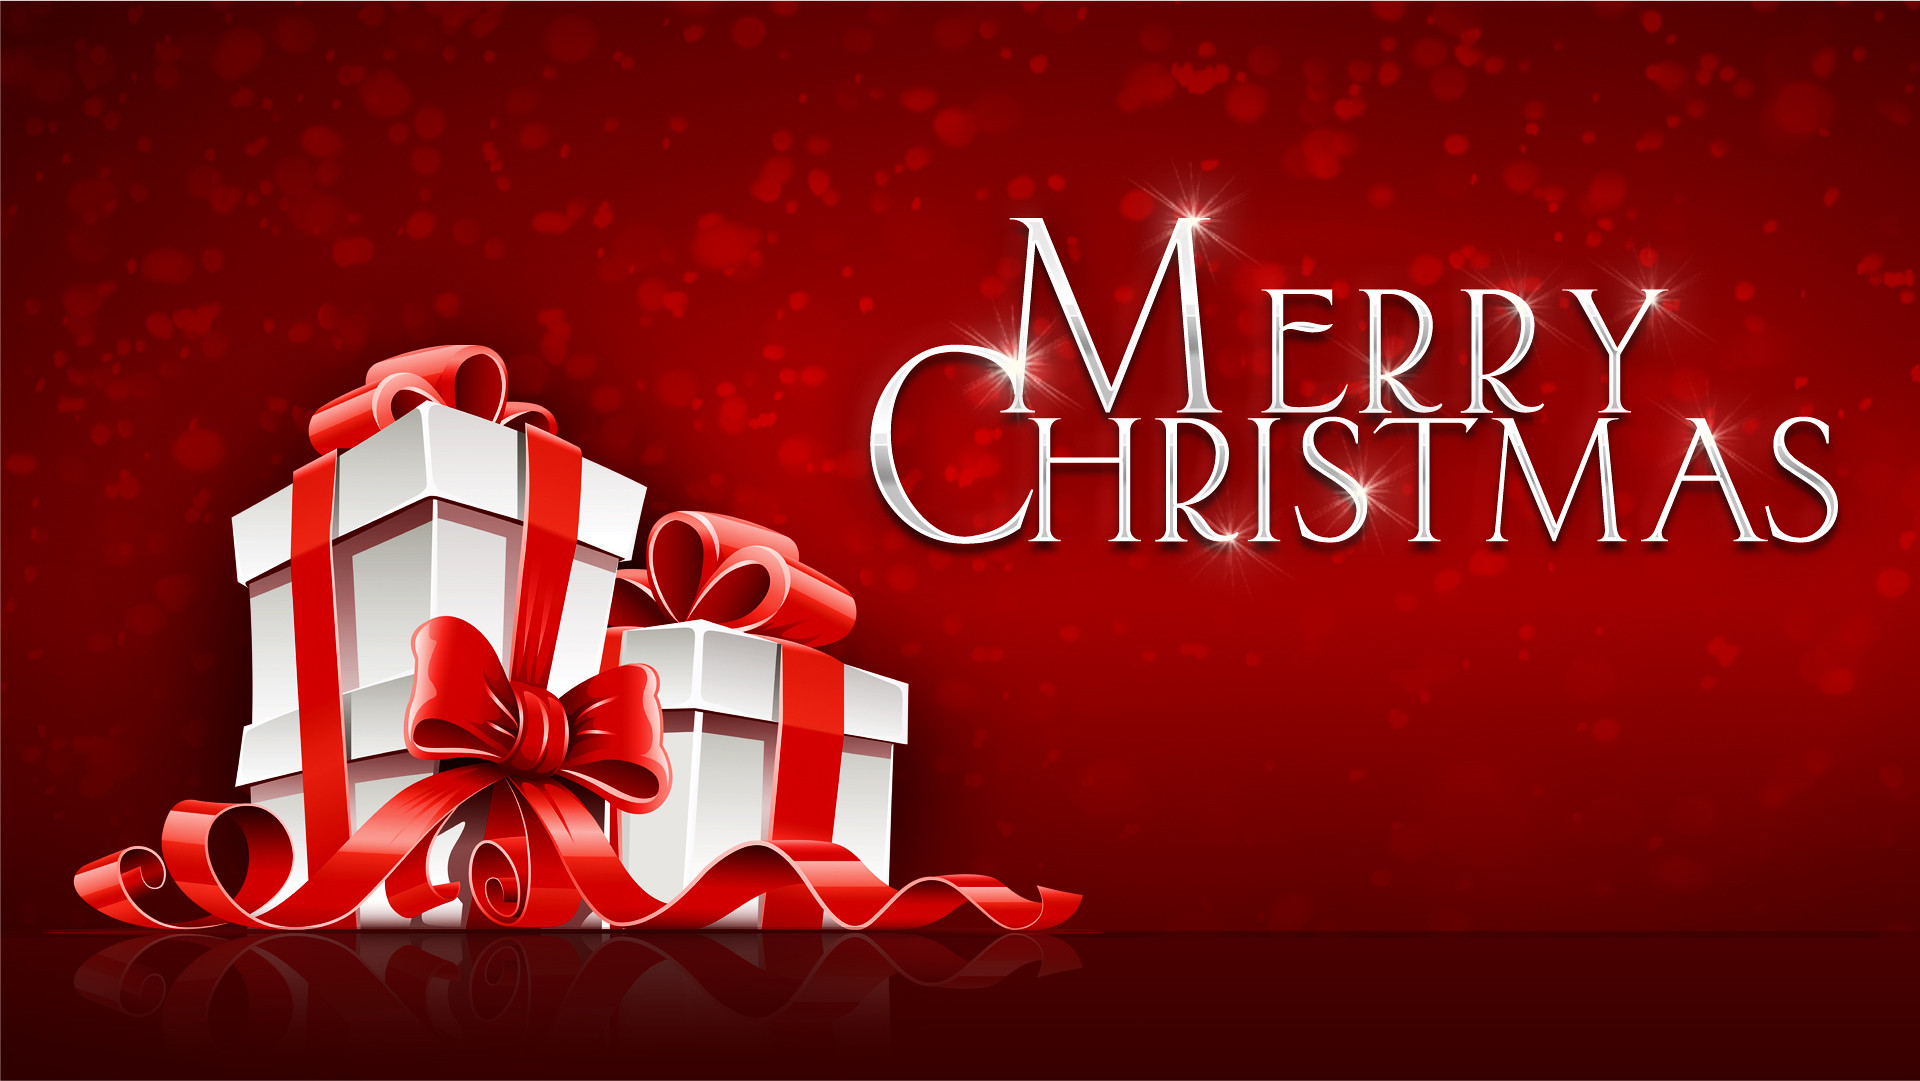 merry christmas 2013 hd wallpapers | i have a pc